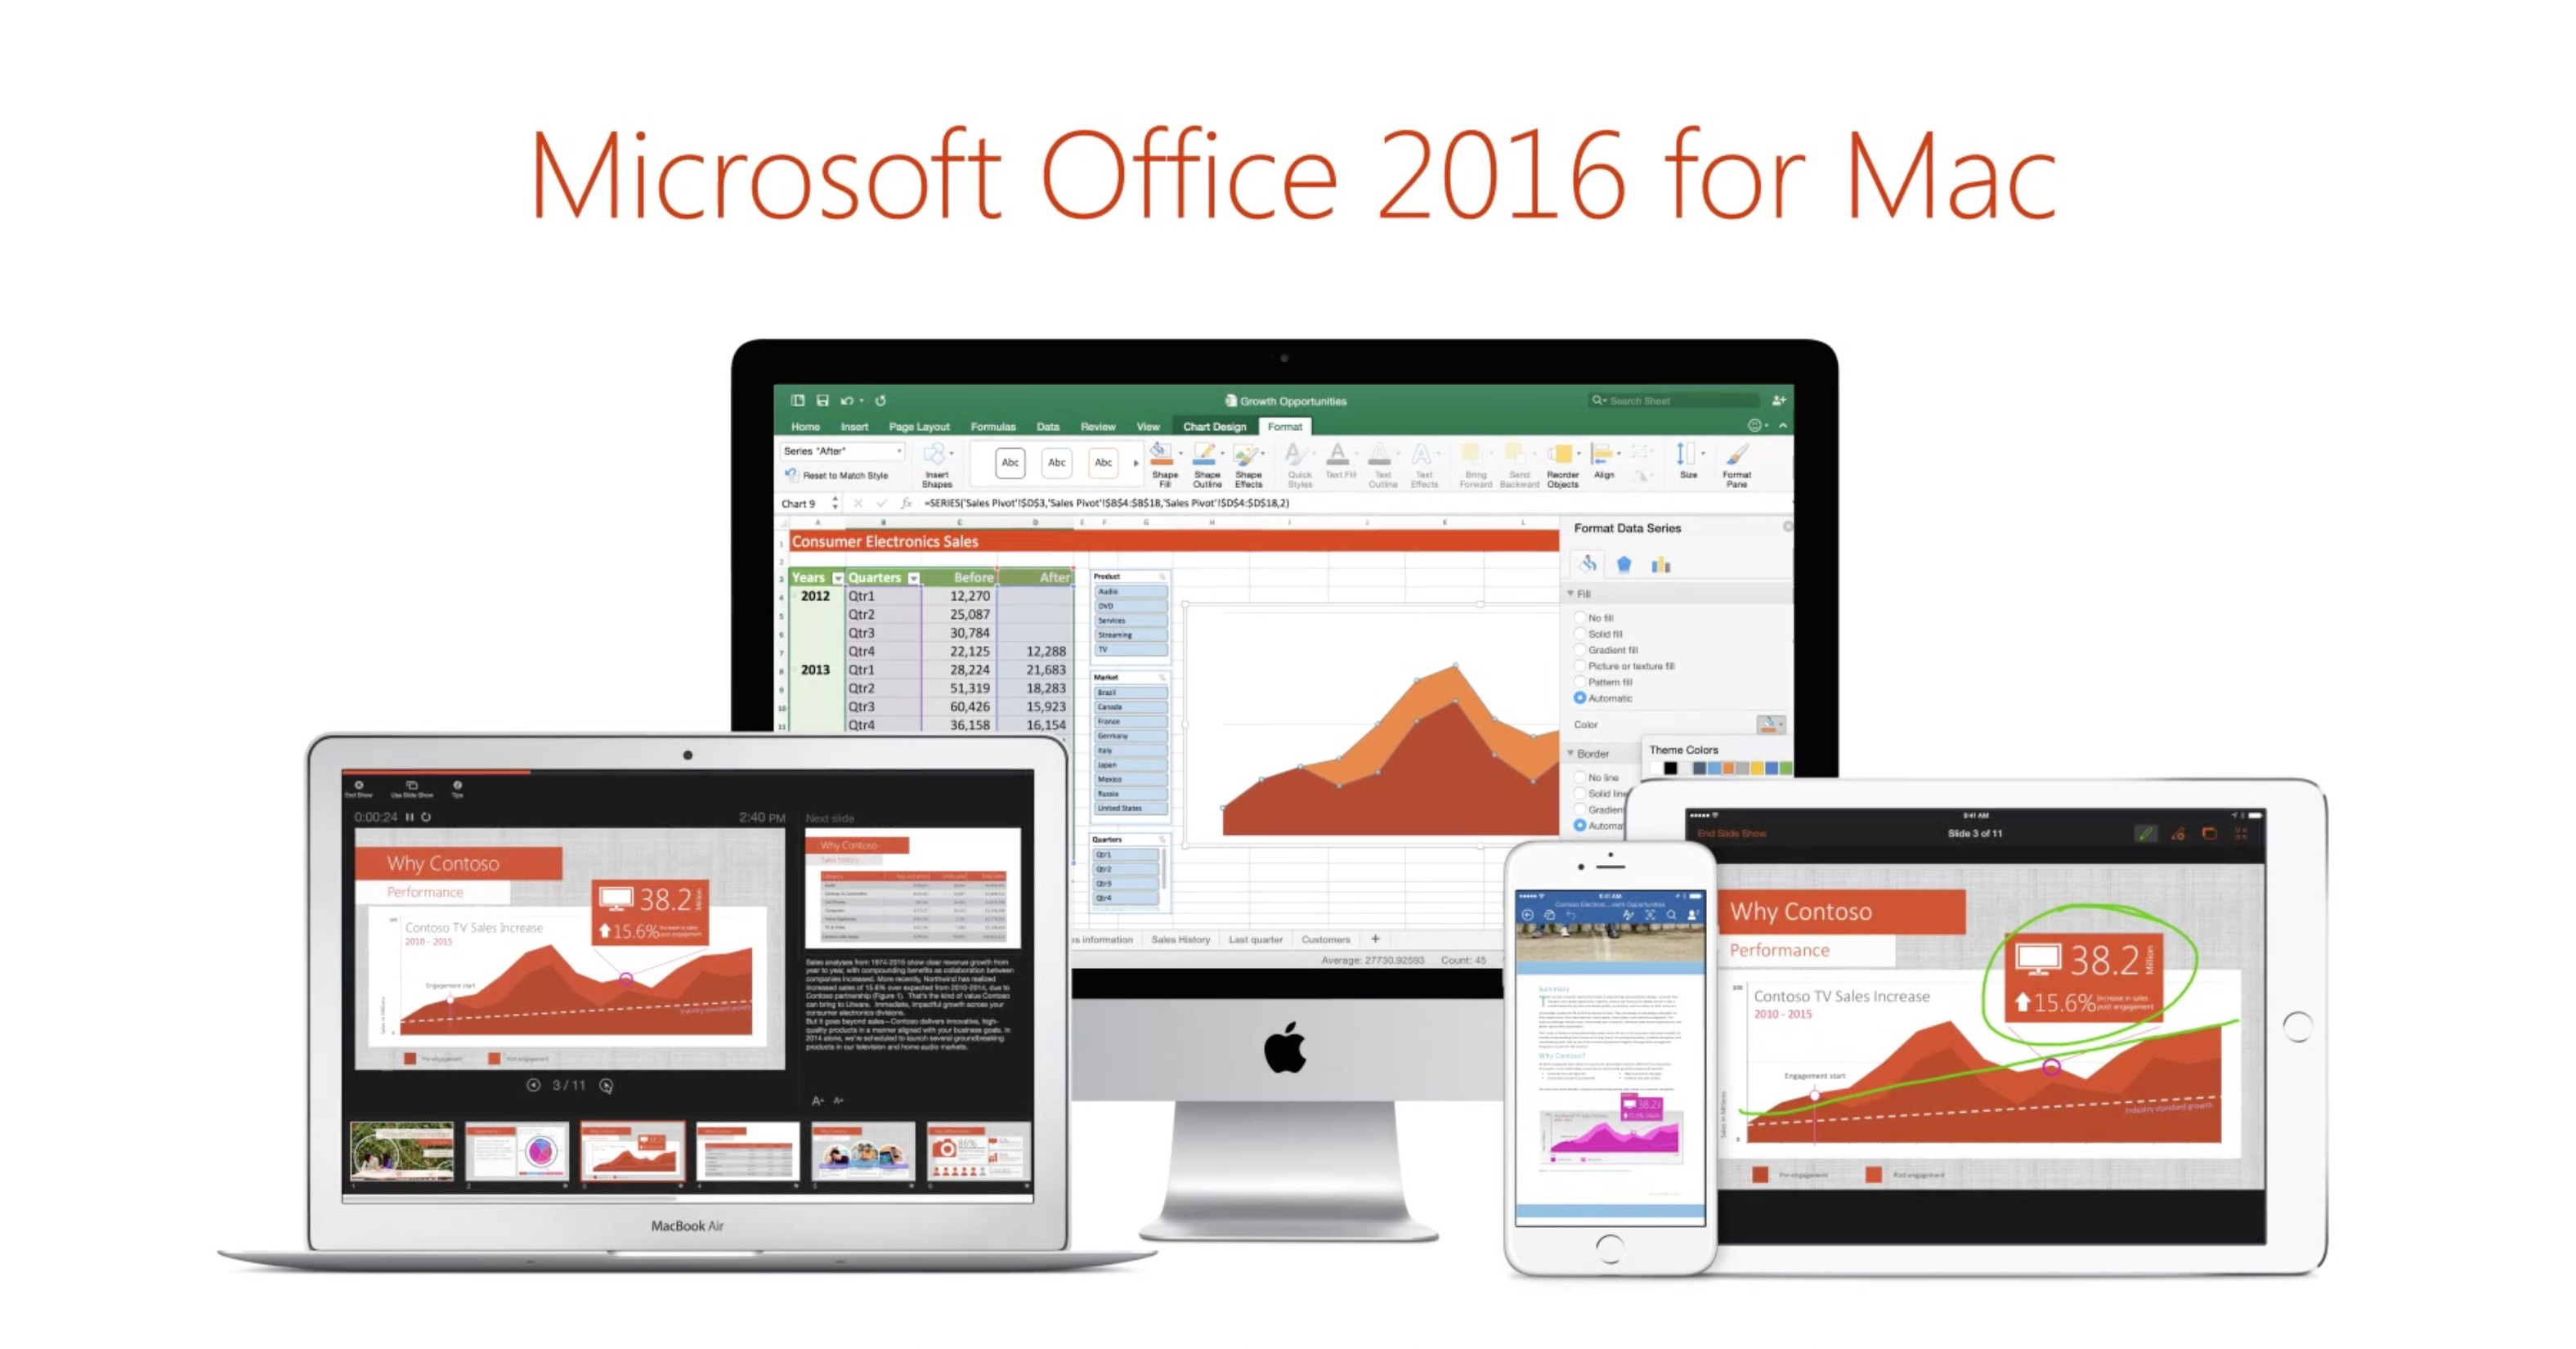 office 2016 pour mac la version finale est disponible pour les abonn s office 365 geeks and com 39. Black Bedroom Furniture Sets. Home Design Ideas